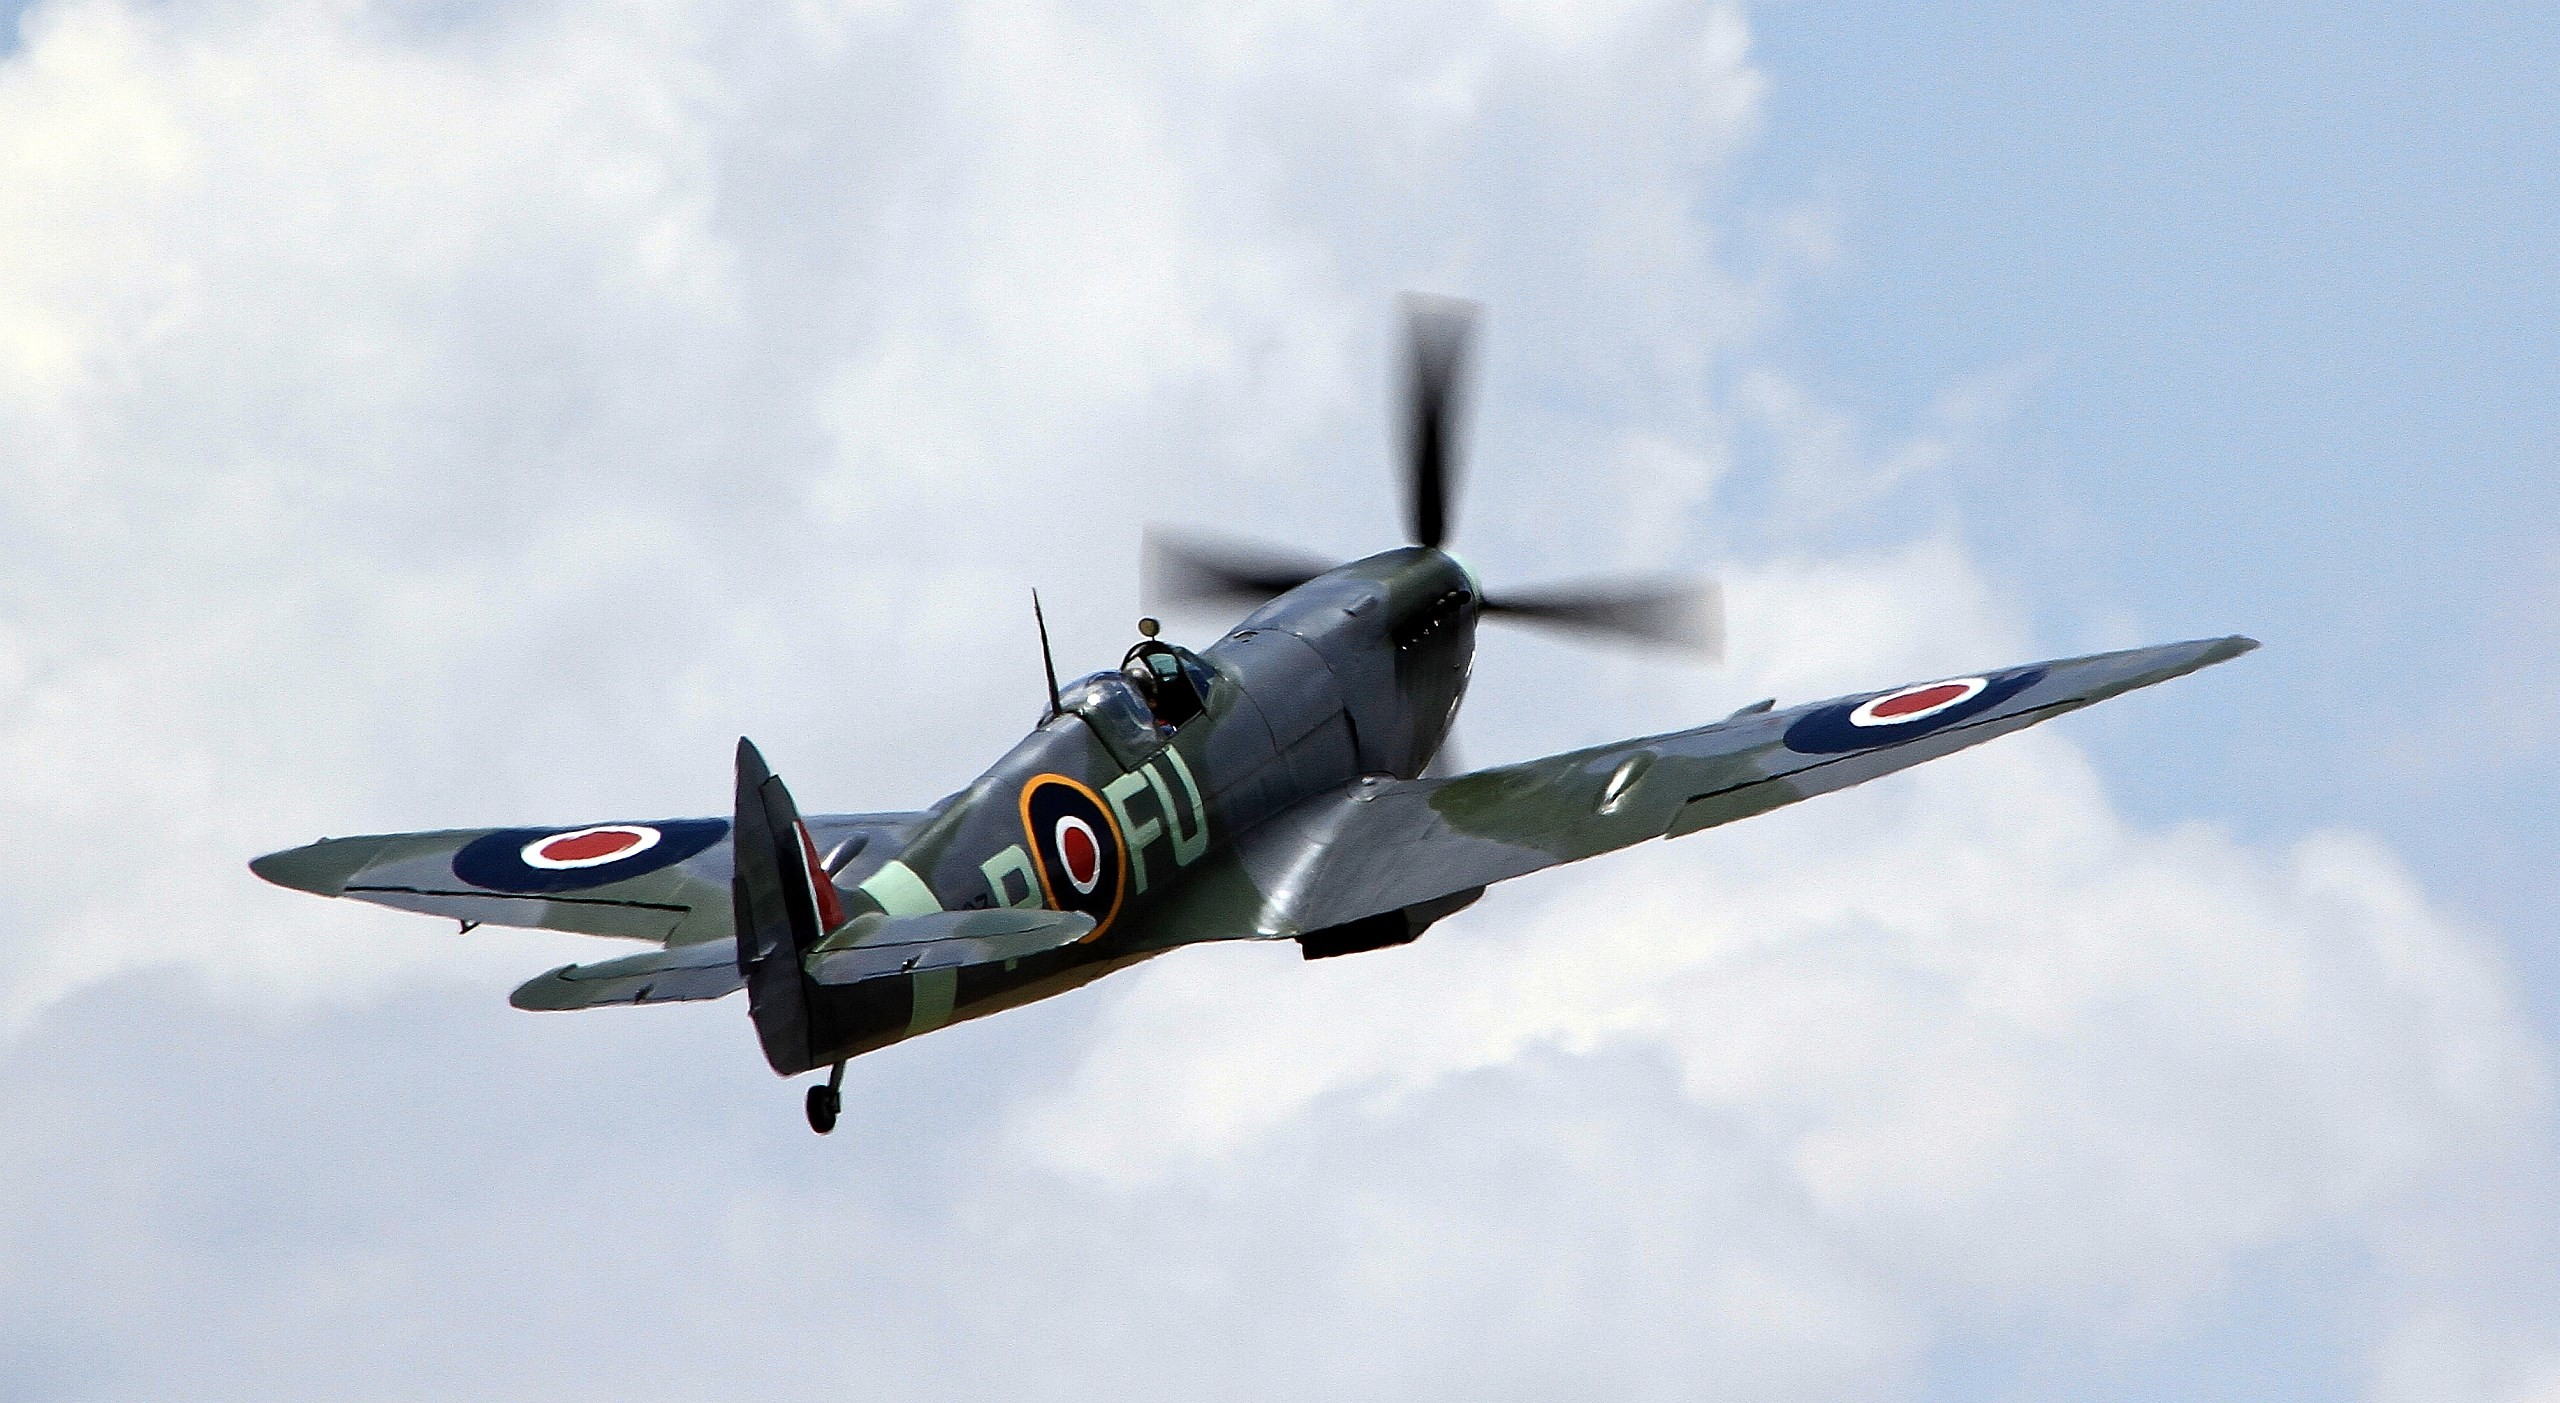 2560x1403 #1852232, supermarine spitfire category - widescreen wallpaper supermarine  spitfire